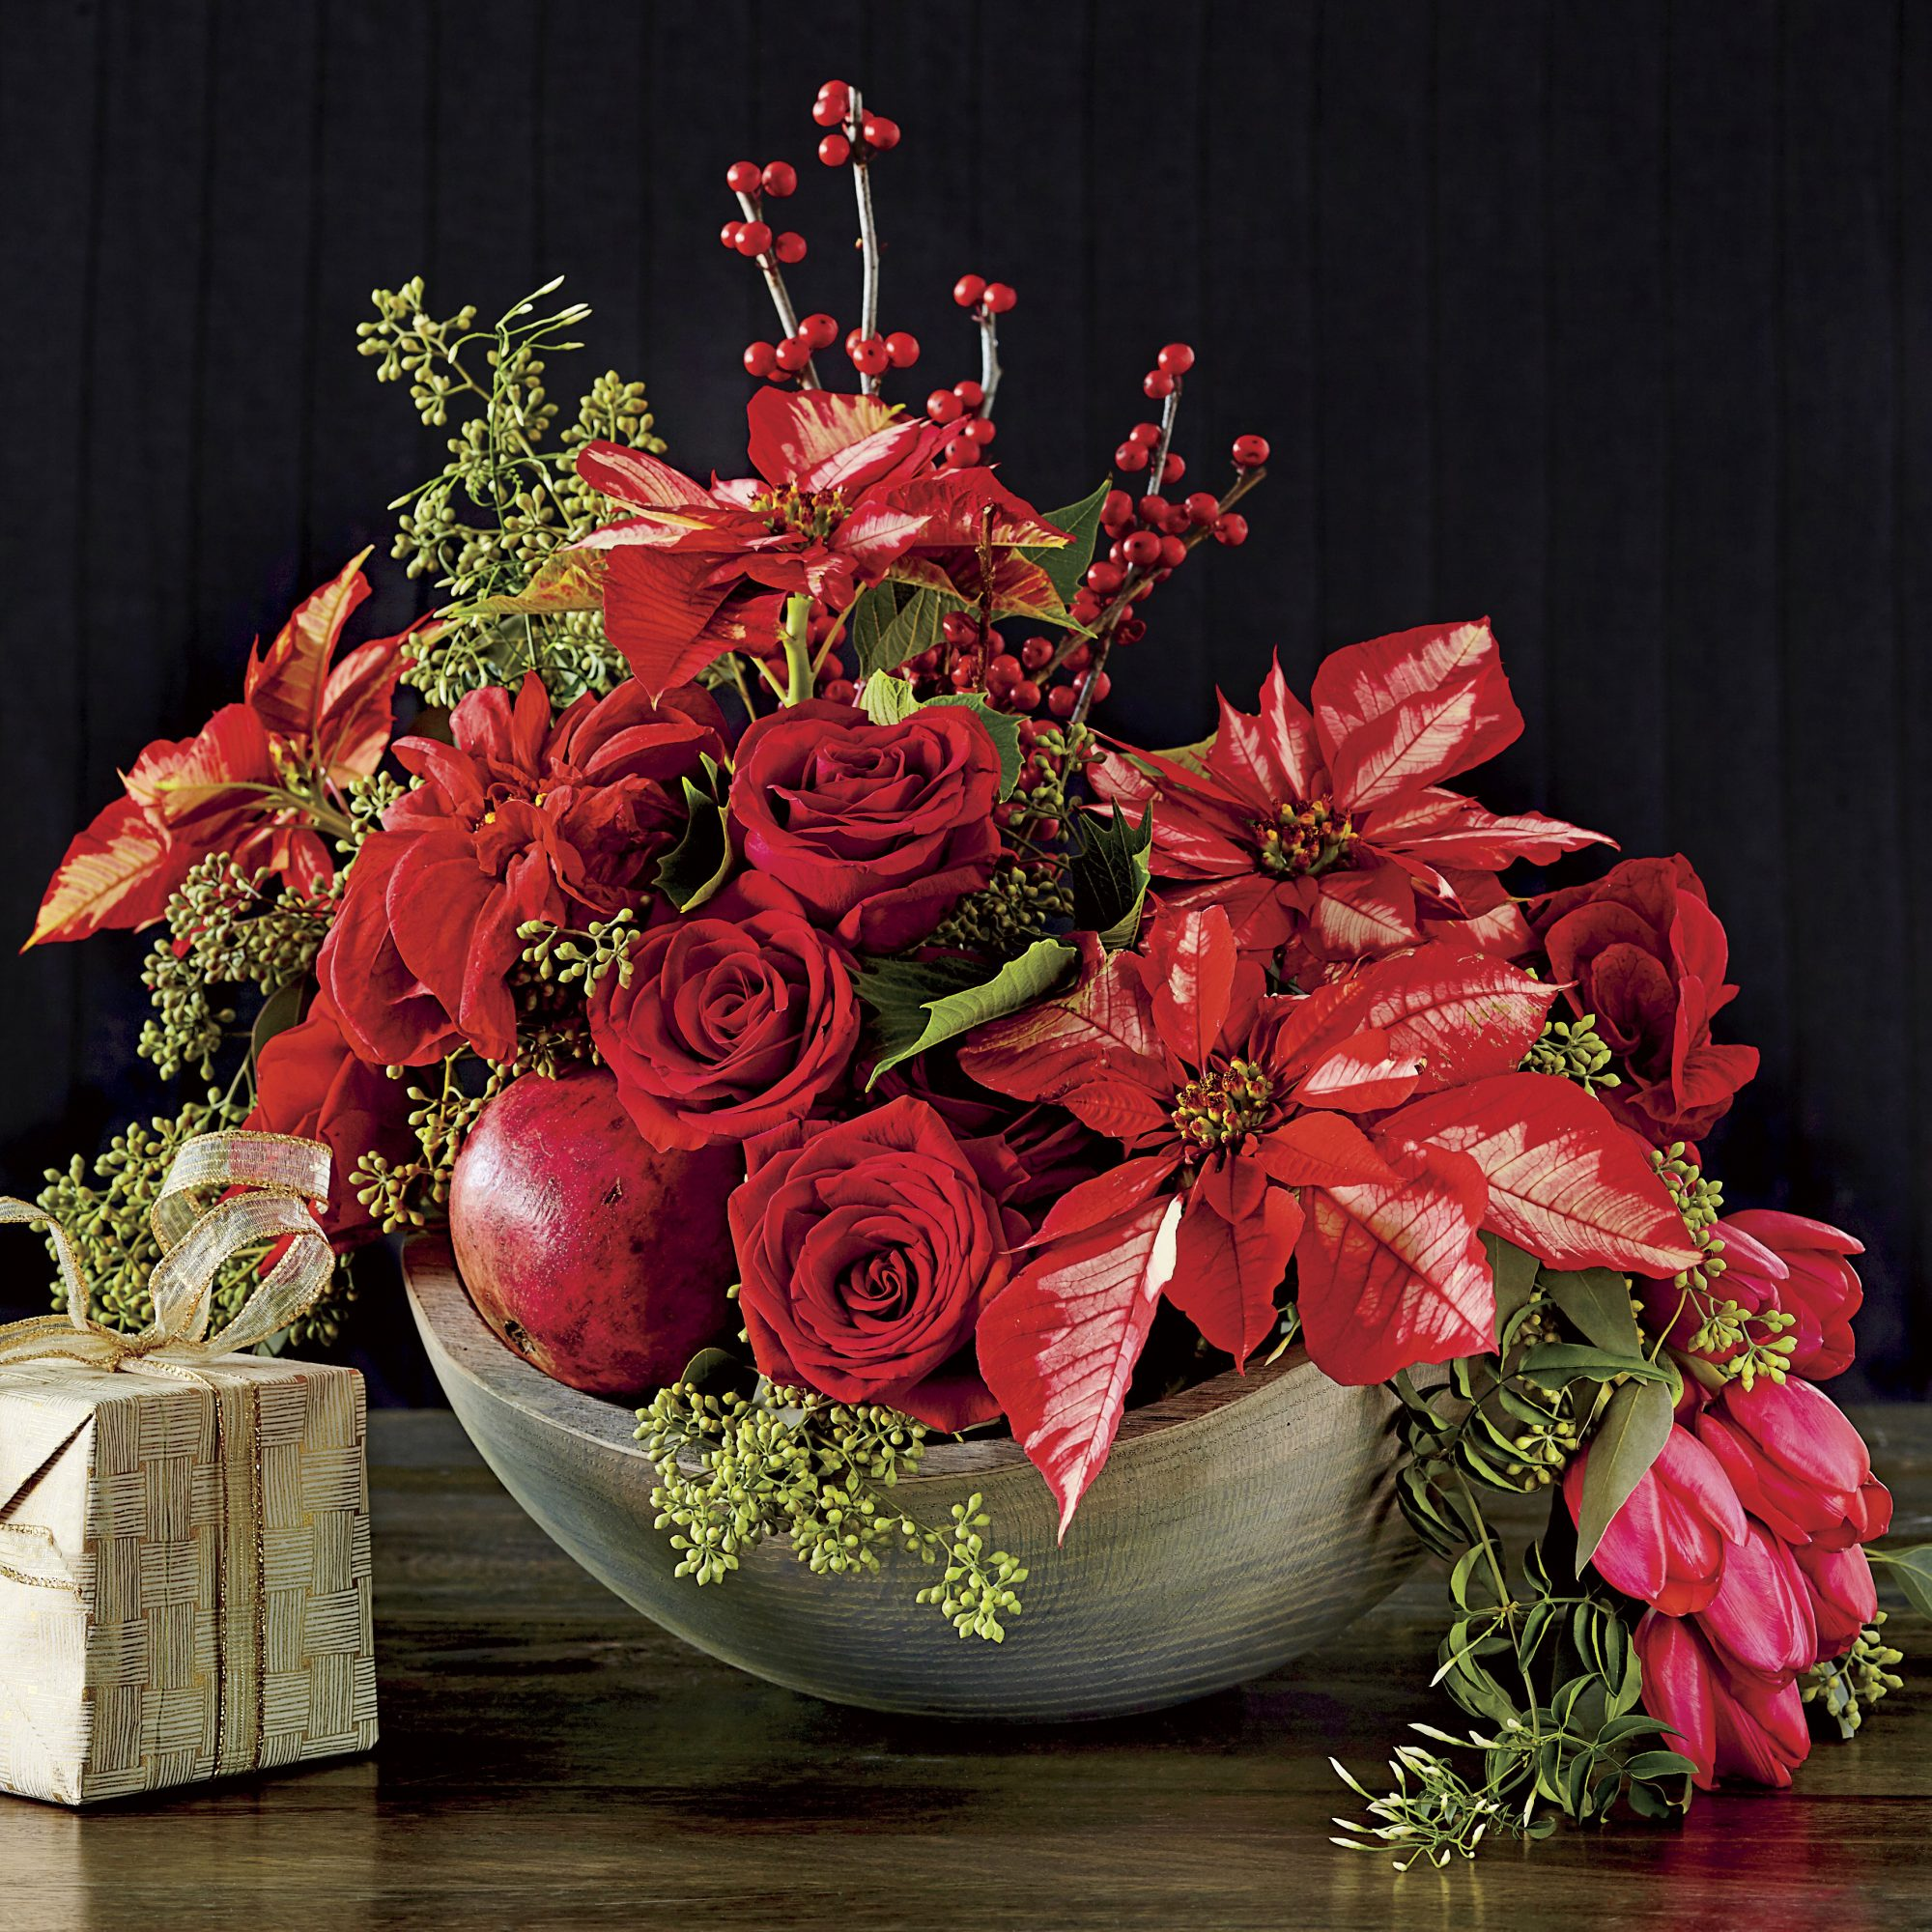 Red Rose and Poinsettia Christmas Centerpiece